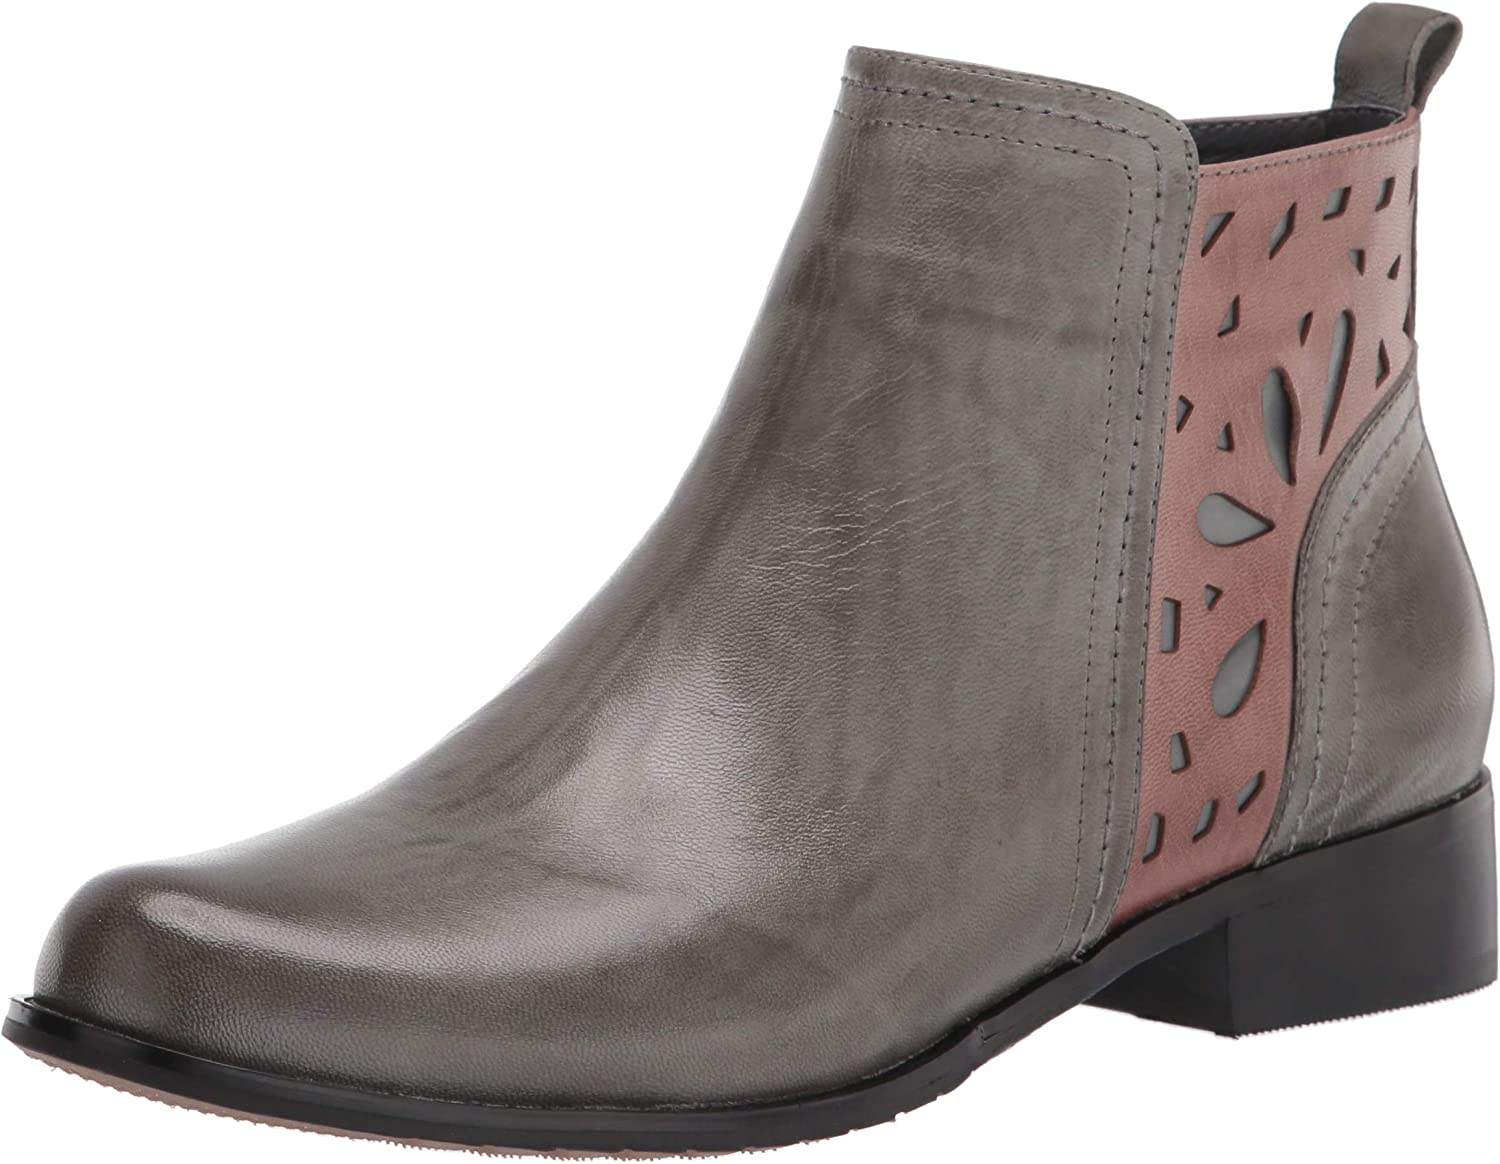 Spring Step Women's Ankle Boot